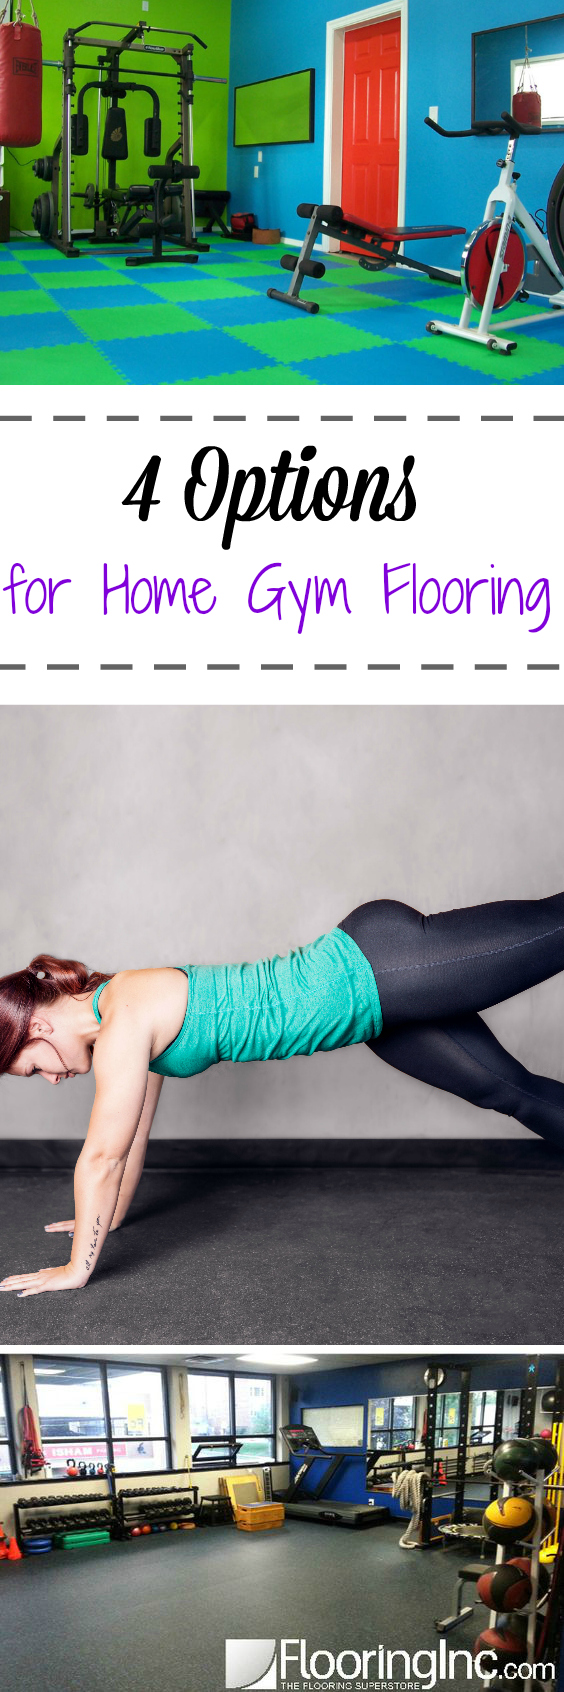 4 Options For Home Gym Flooring Flooringinc Blog